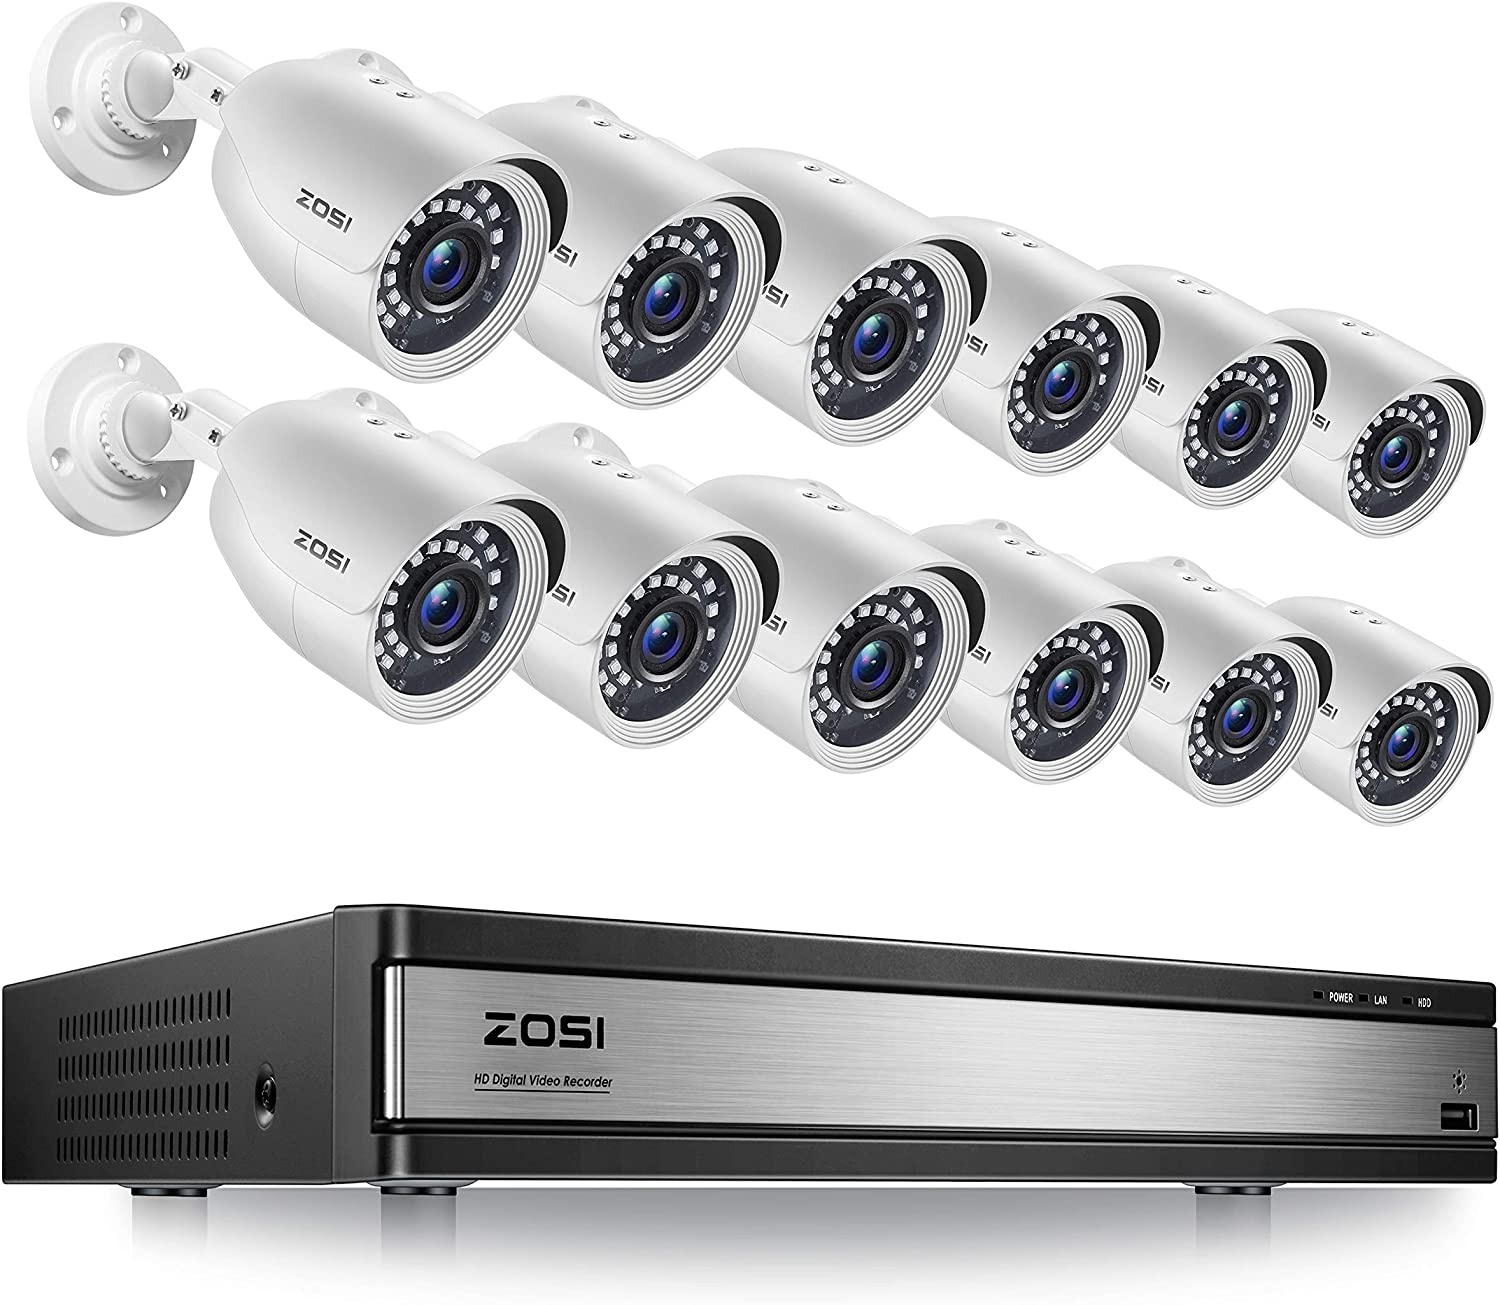 ZOSI H.265+ 1080p 16 Channel Security Camera System, 16 Channel DVR Recorder and 12 x 1080p Weatherproof Surveillance CCTV Bullet Camera Outdoor Indoor, 80ft Night Vision, 90° View Angle (No HDD)